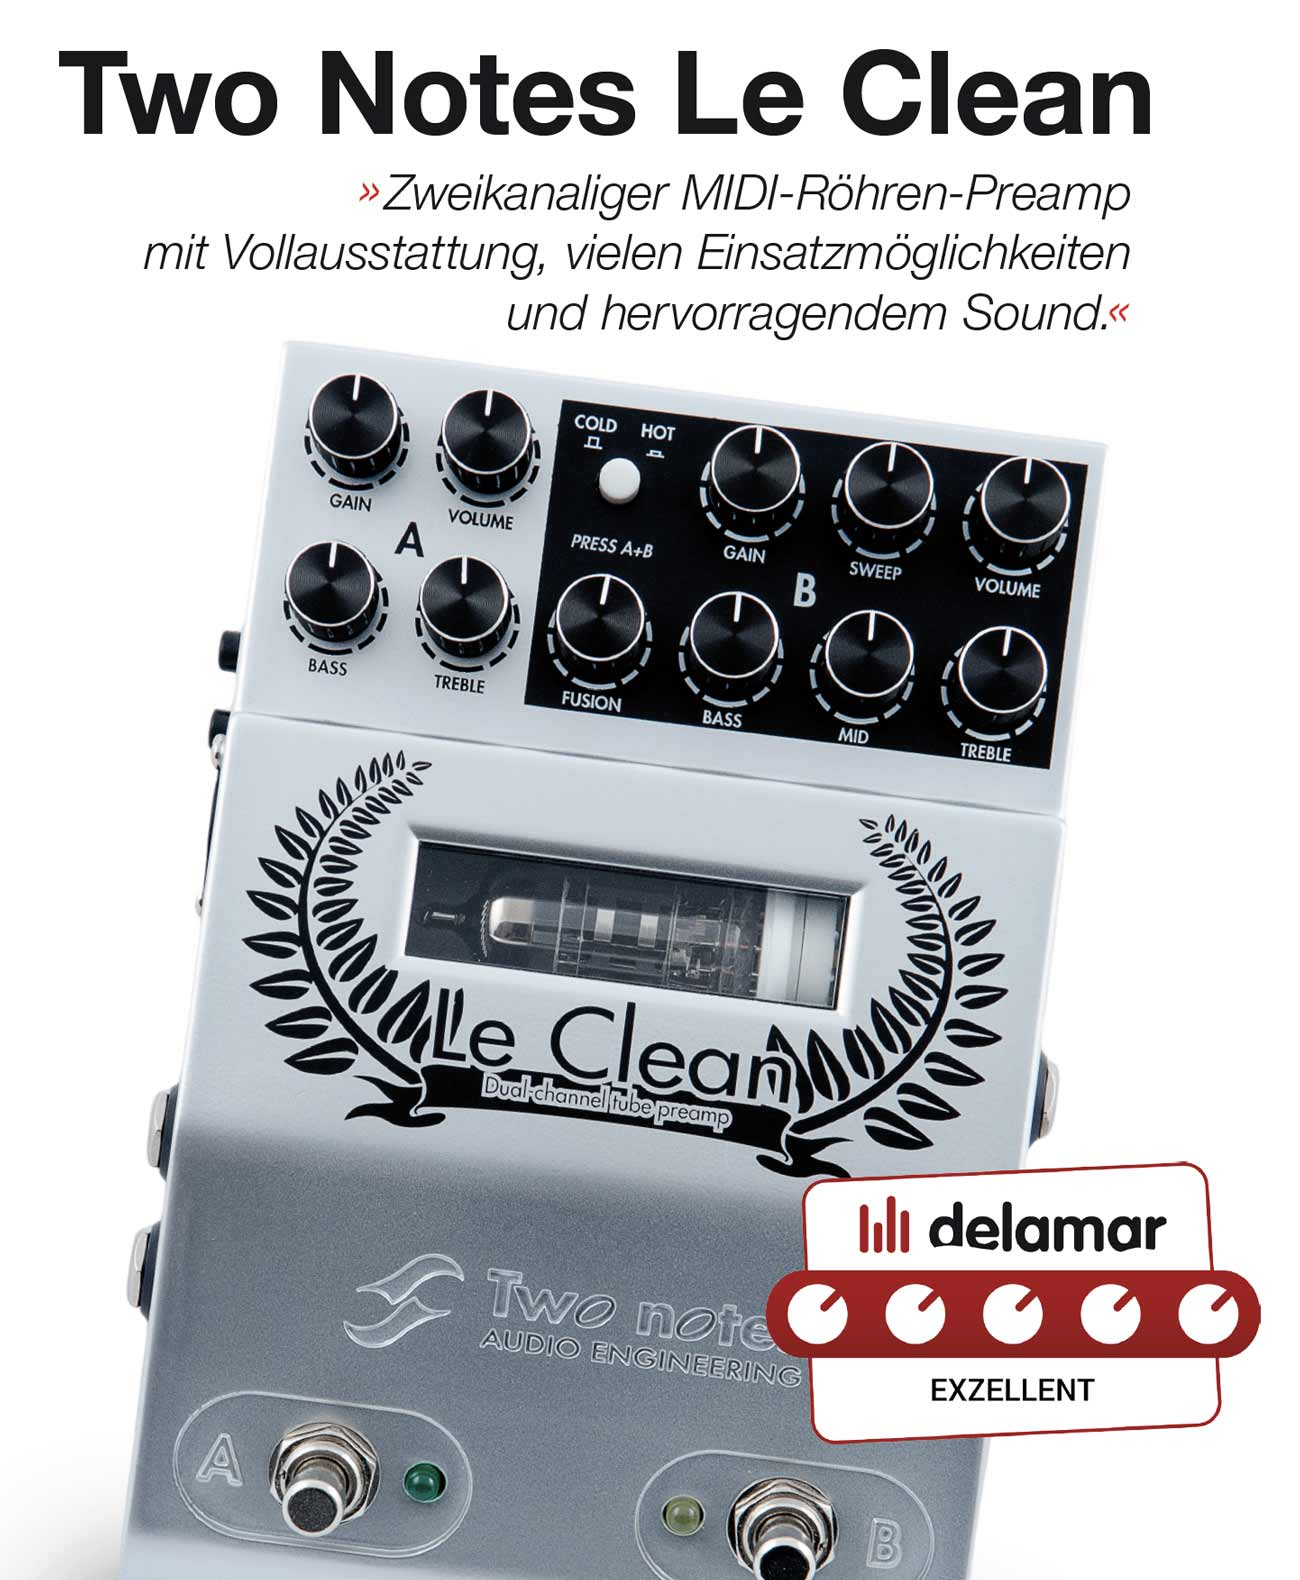 two-notes-le-clean-testbericht-delamar